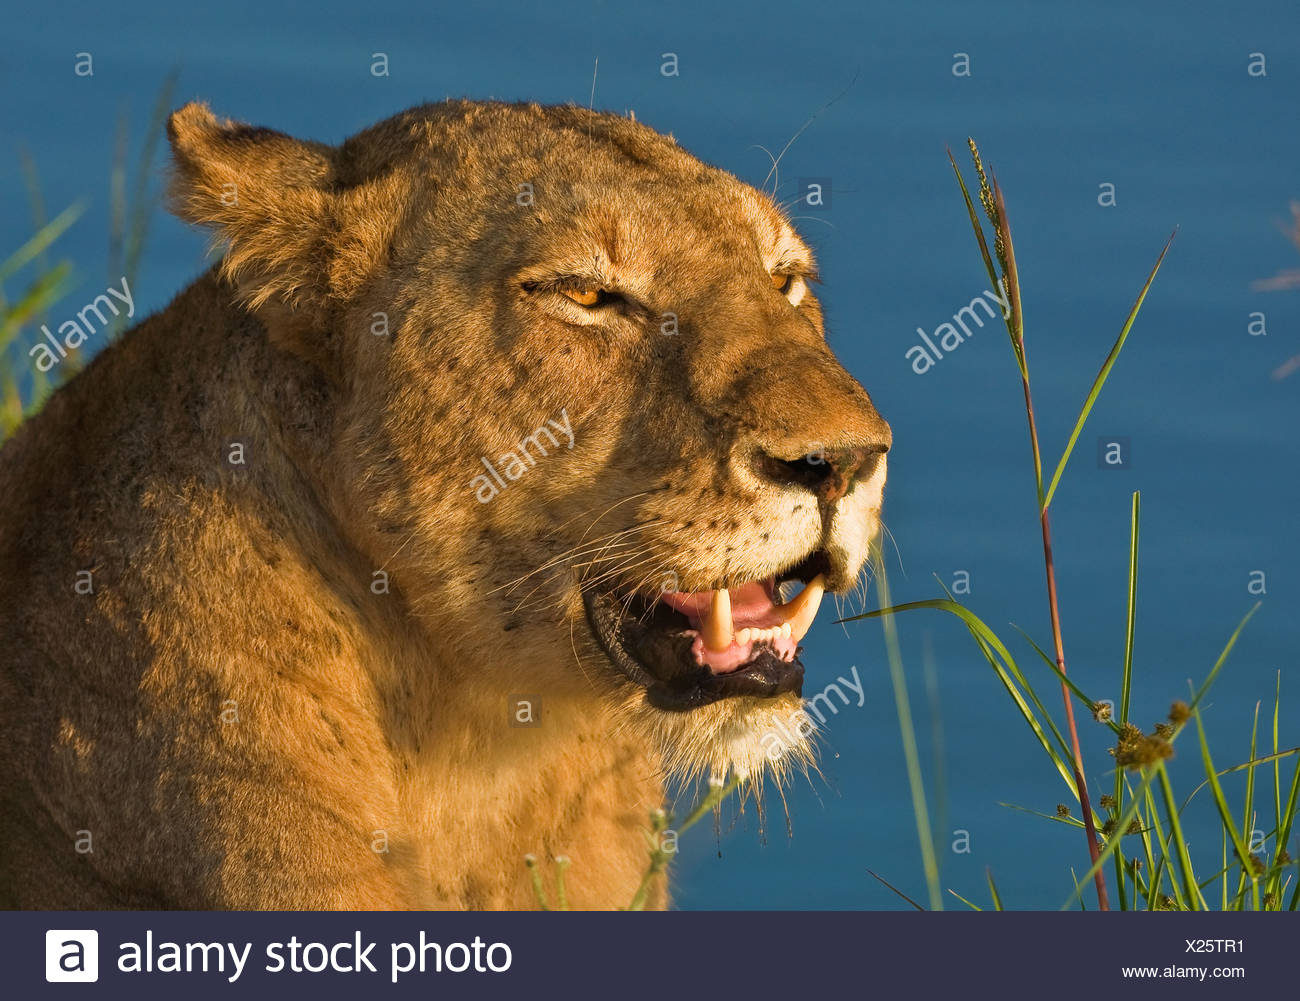 Close up of female lion, Greater Kruger National Park, South Africa Stock Photo